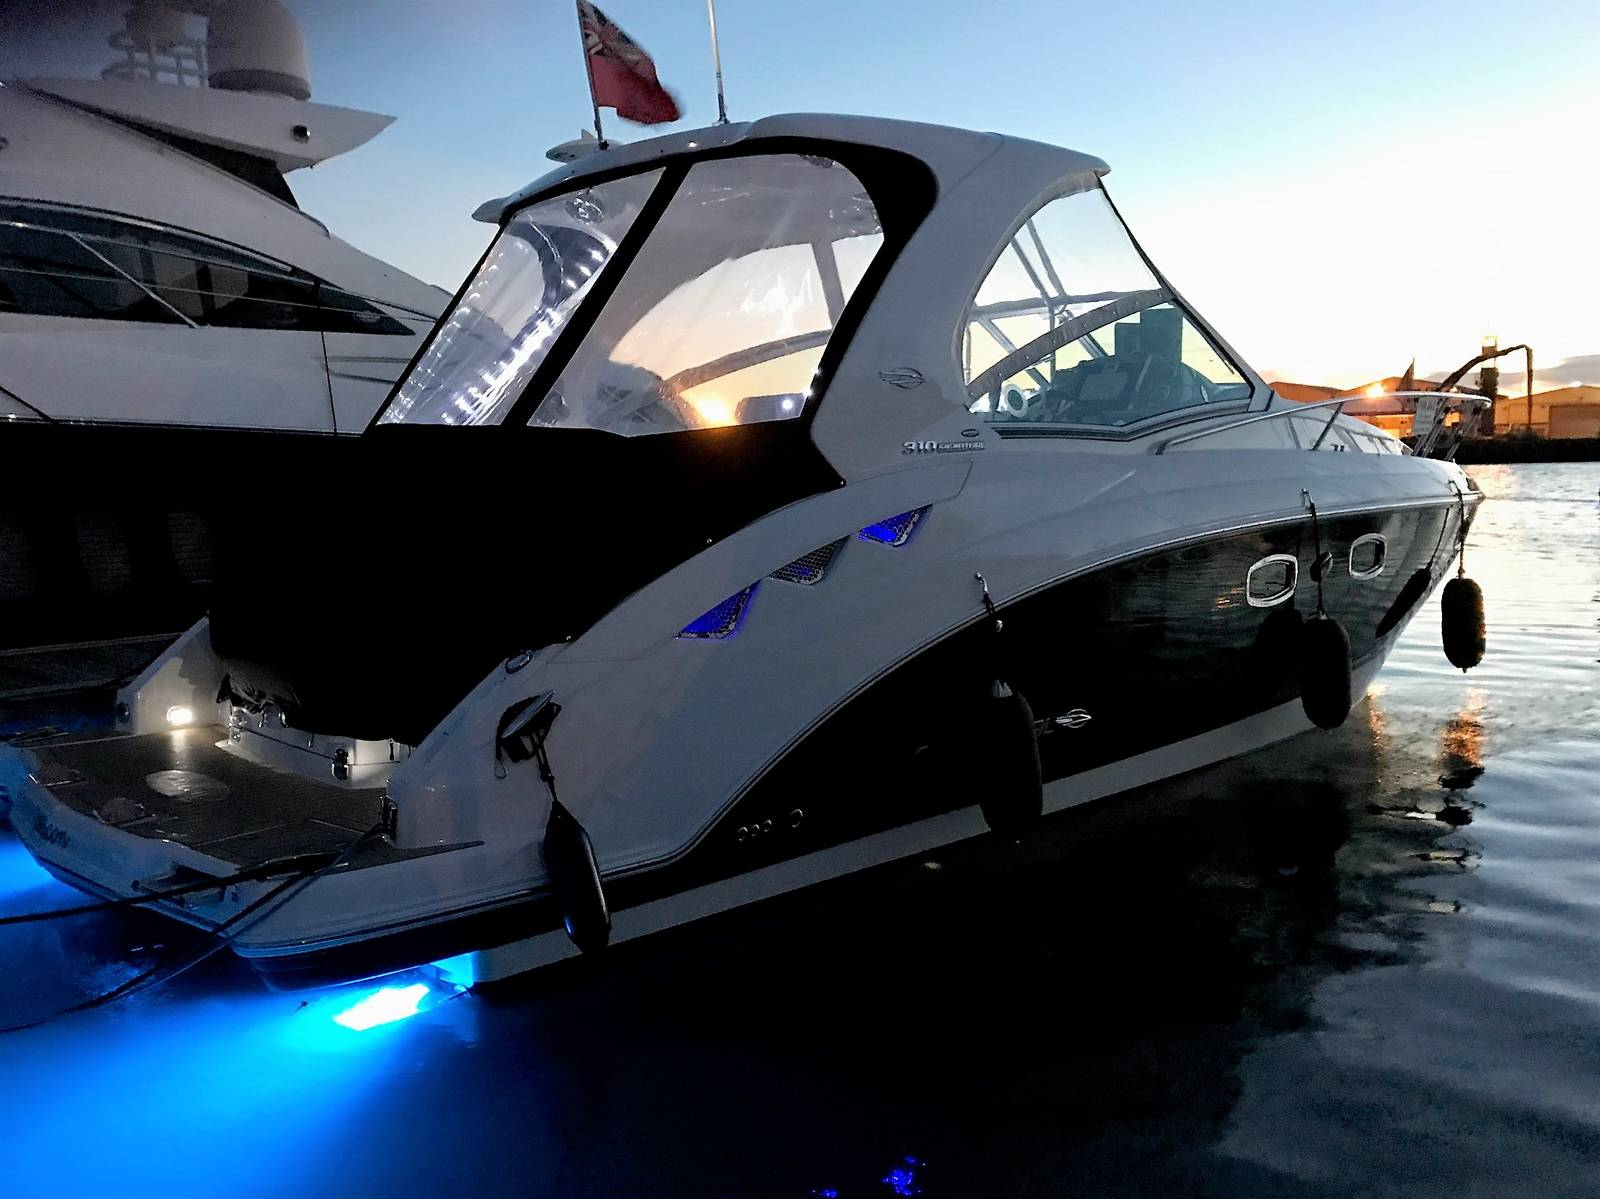 2015 Chaparral 310 Signature Cruiser Starboard Side Lights On